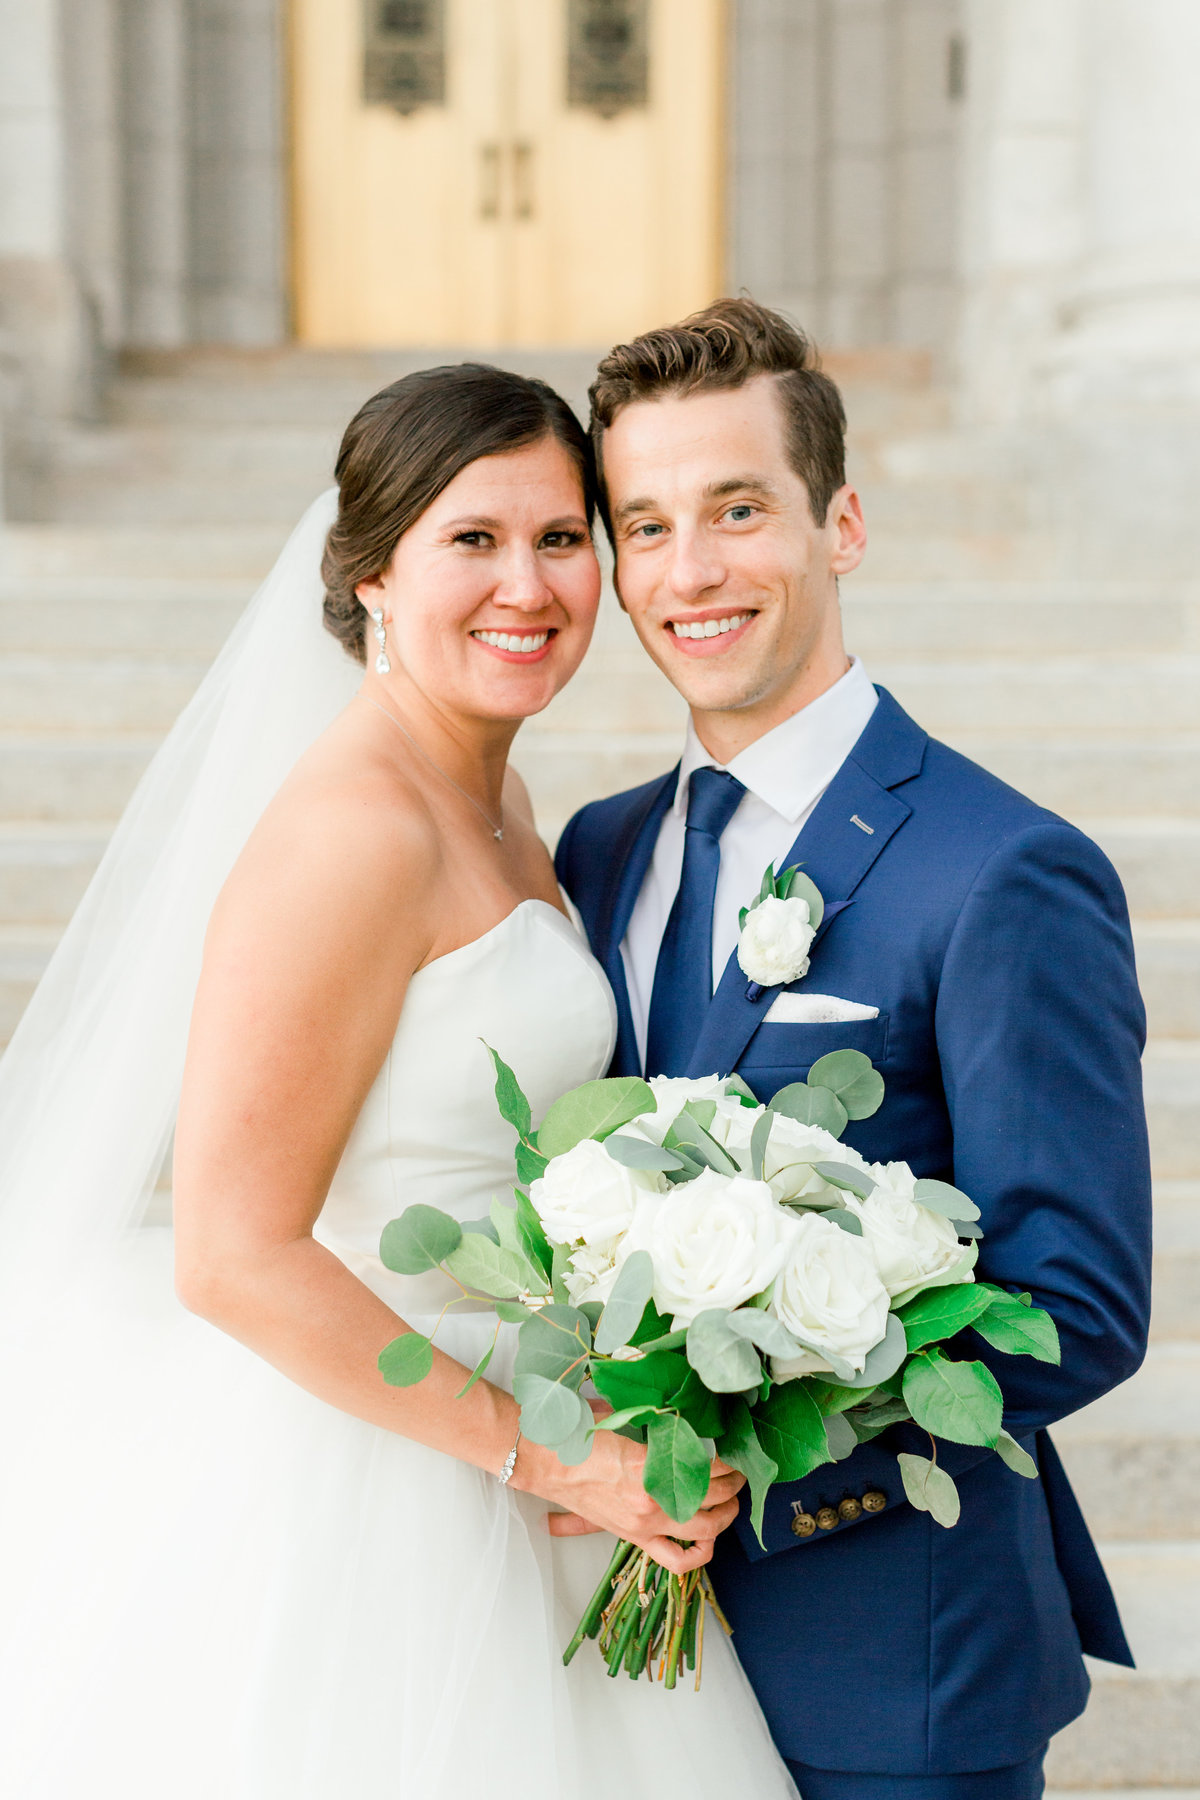 lindsey-taylor-photography-minneapolis-st-peters-basilica-wedding-photographer35